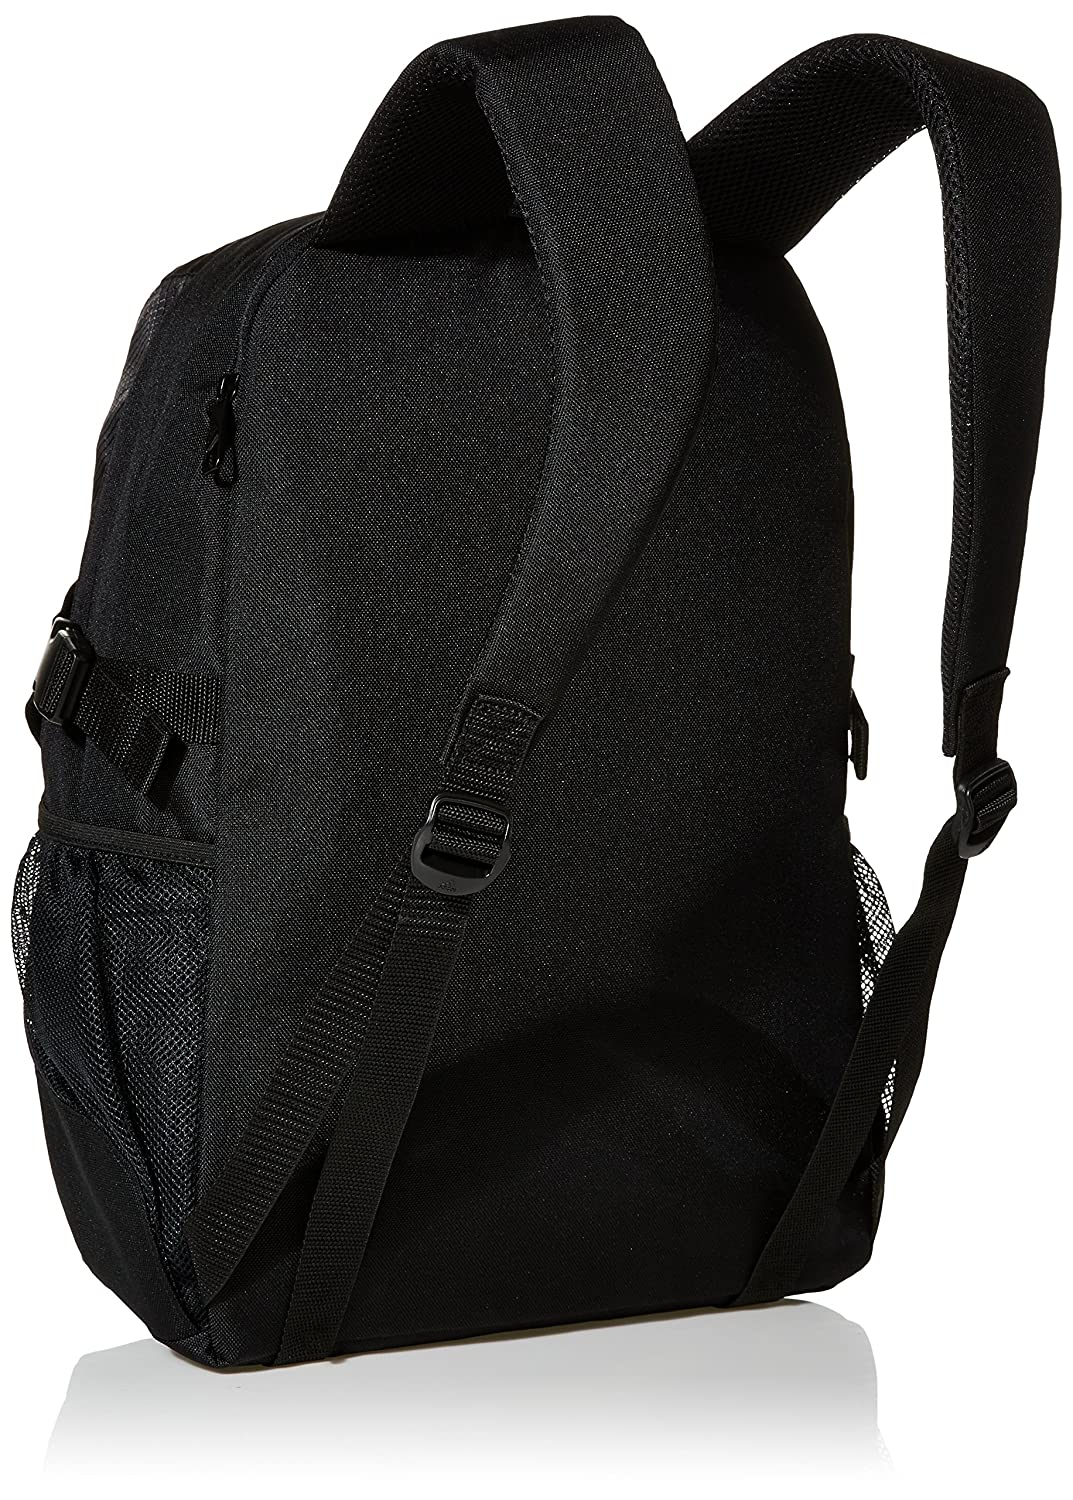 Adidas Power 3 Backpack Sports Direct  d5bda1aee5f04